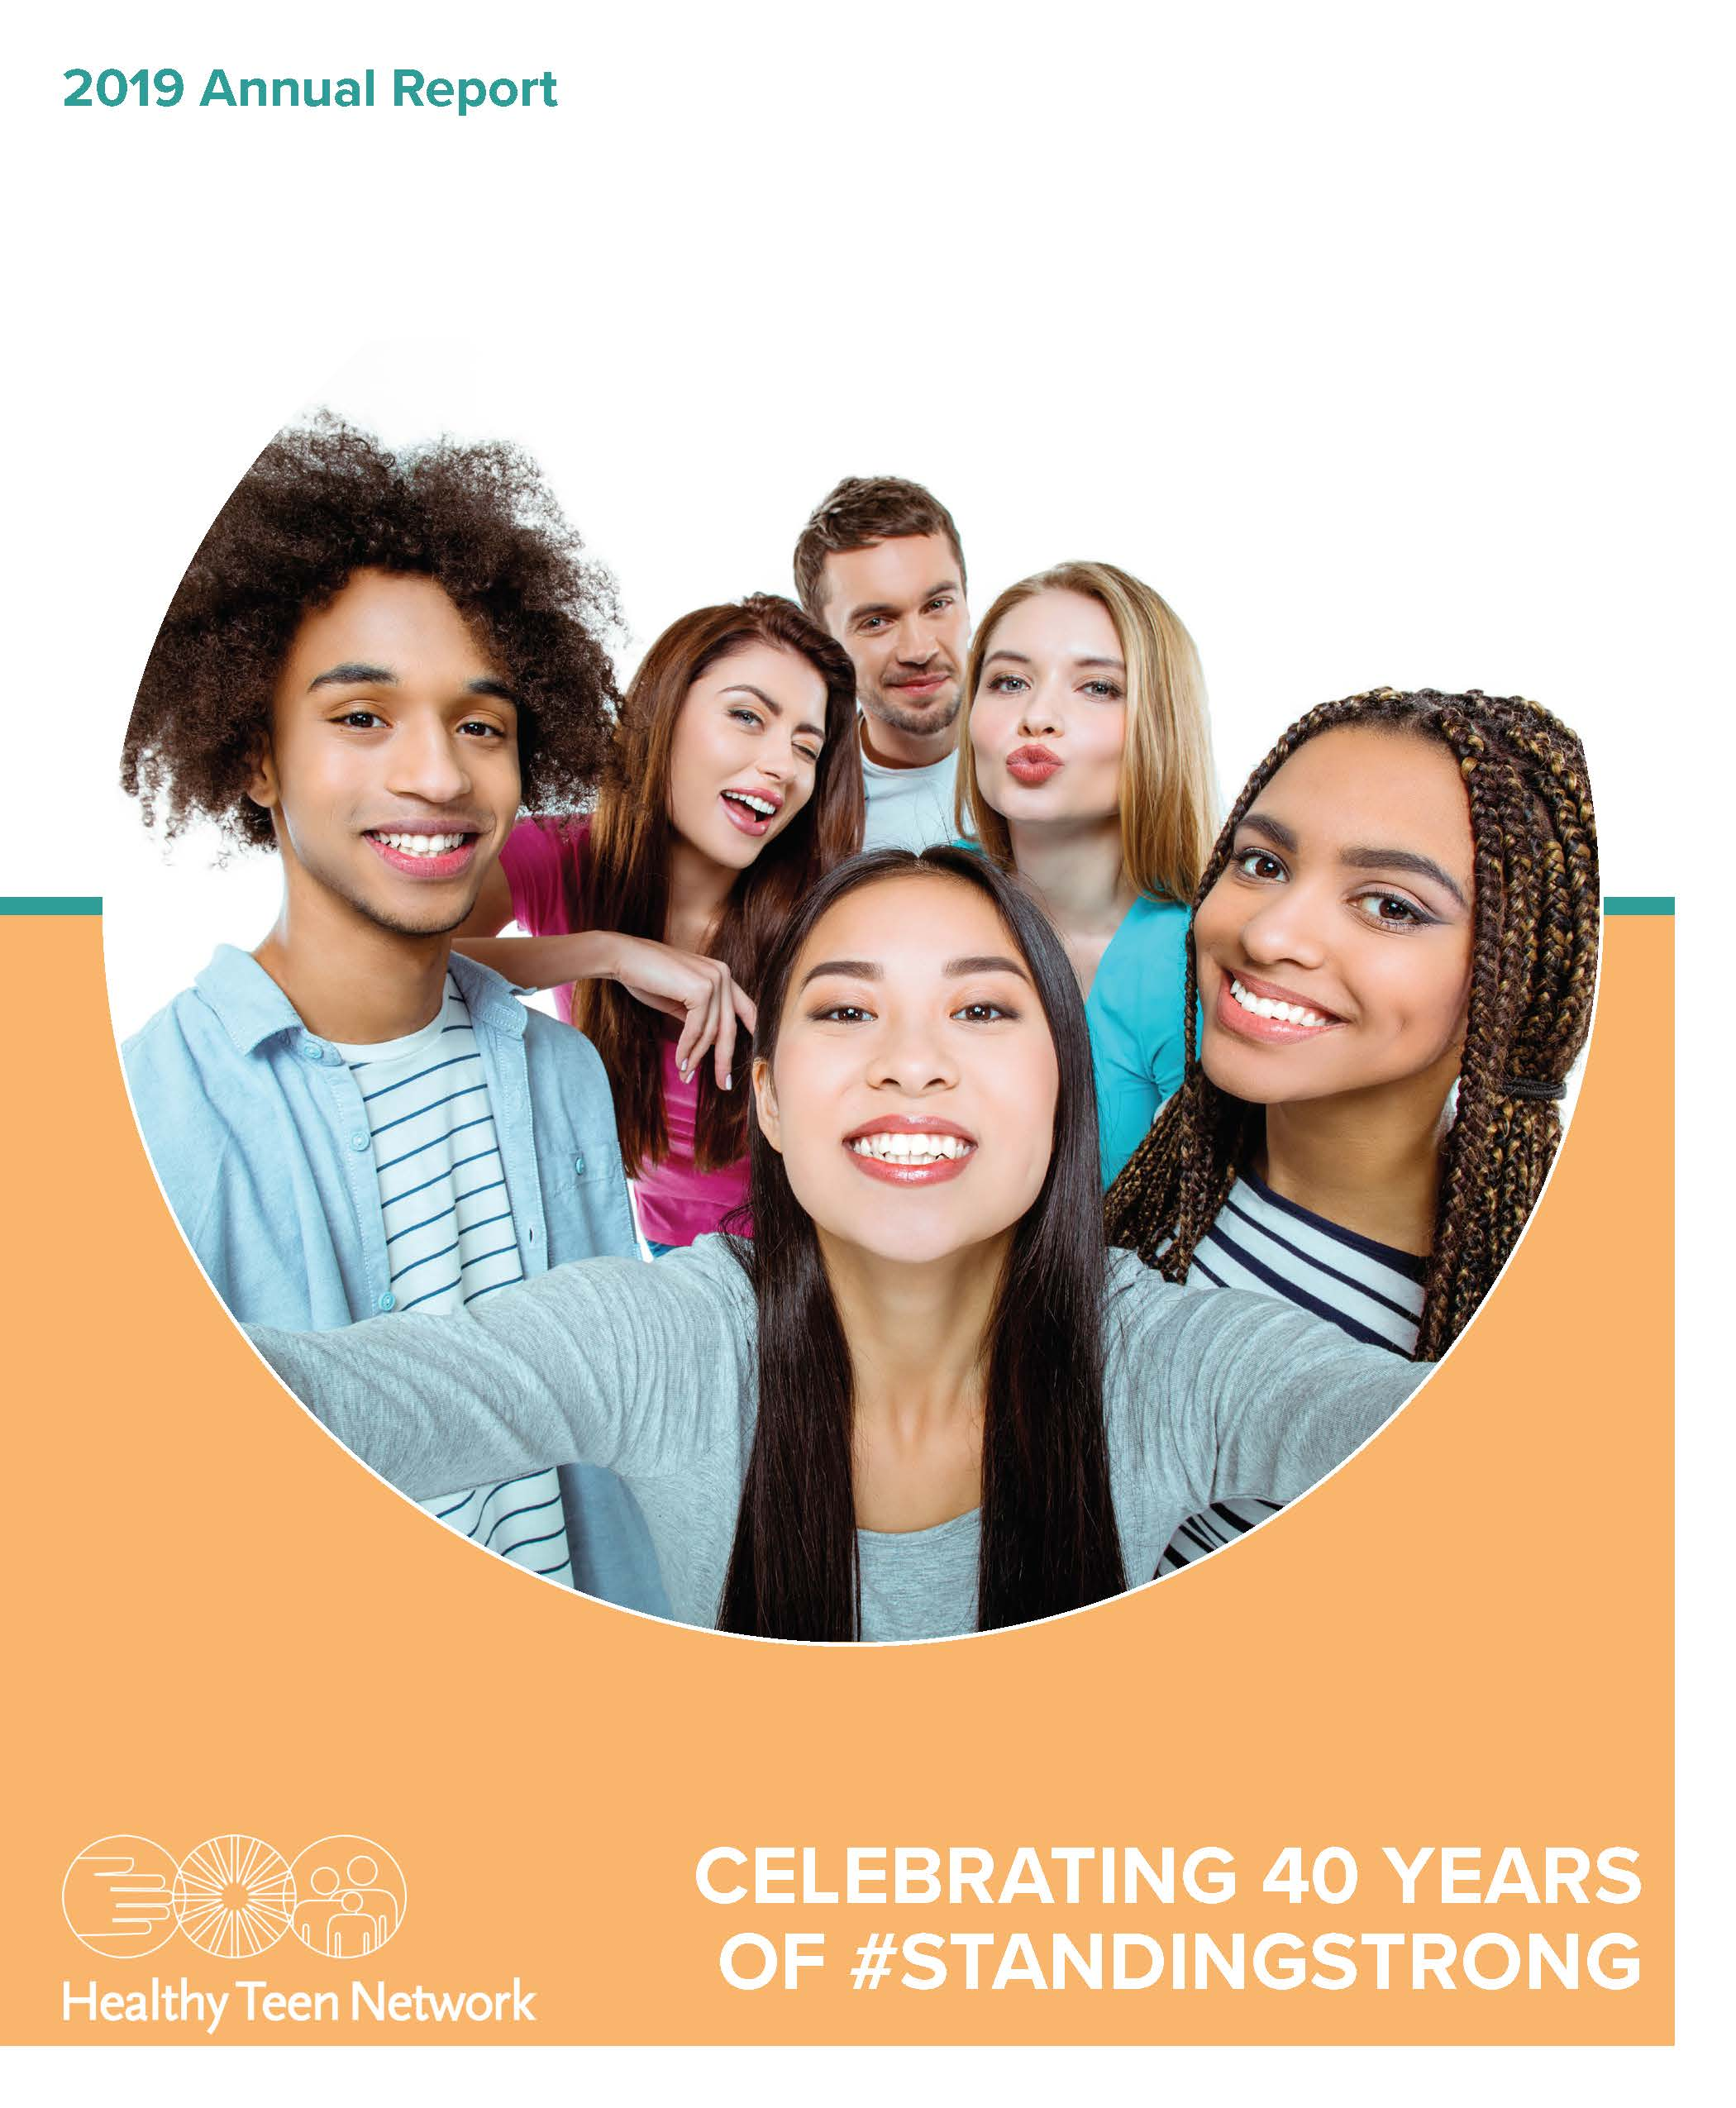 Cover image of 2019 annual report. Includes title and image of 6 adolescents, smiling for a group selfie.